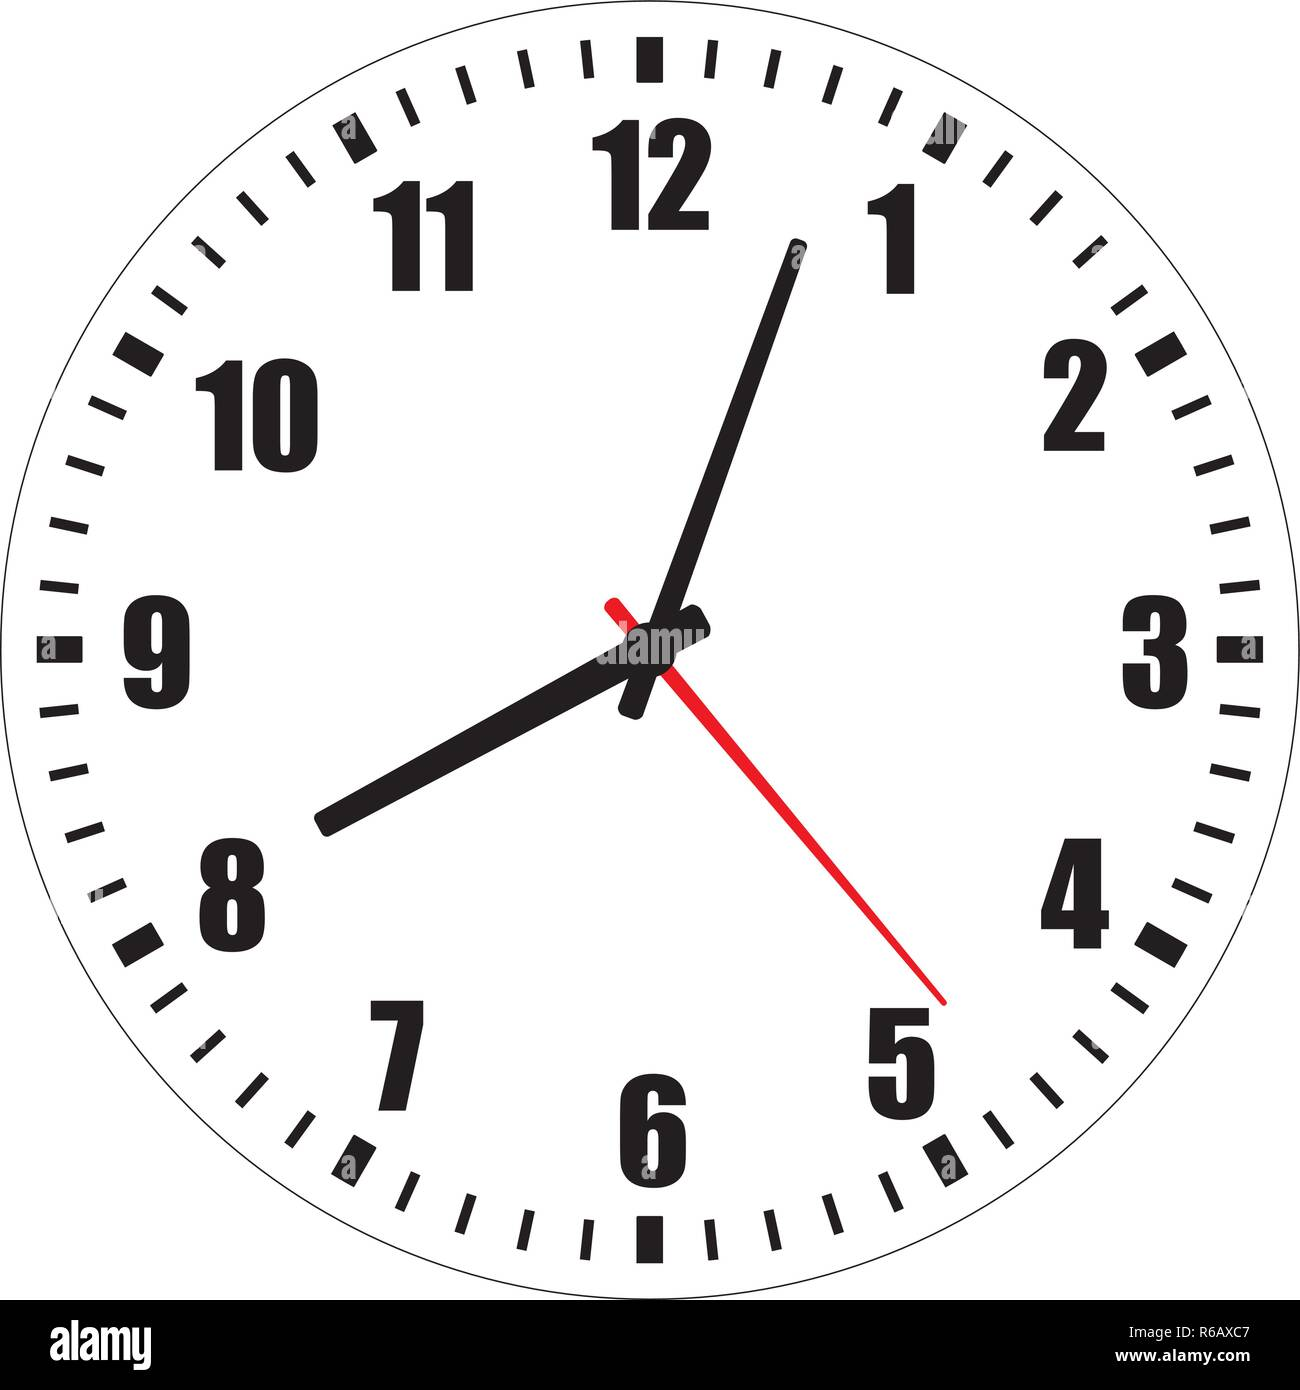 photograph relating to Printable Clock Face With Hands identify Vector example of blank clock confront dial with Arabic